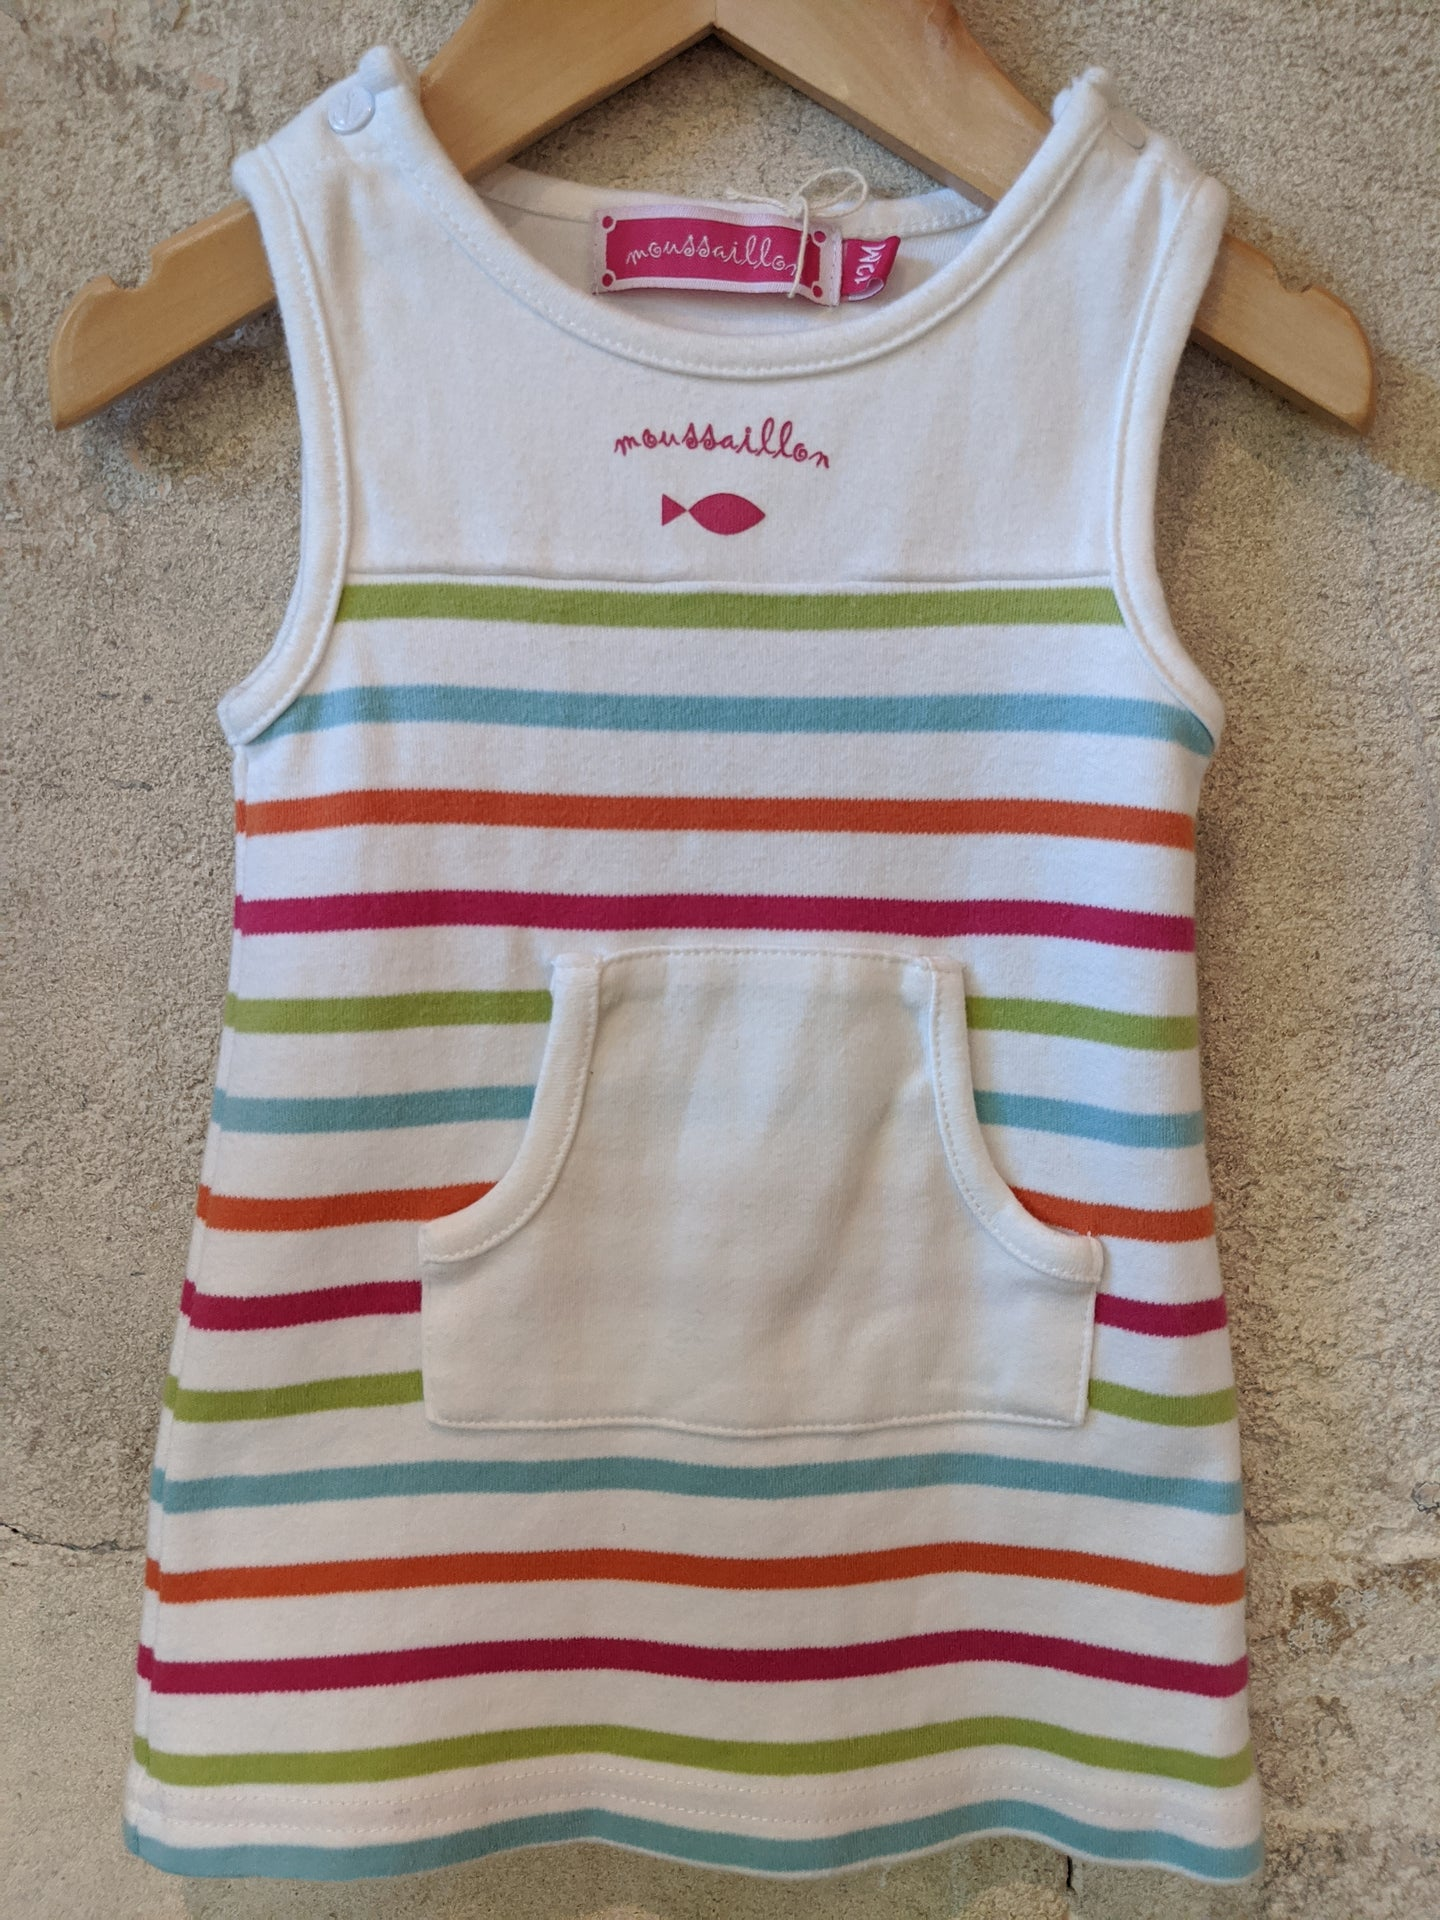 Moussaillon Breton Striped Soft Cotton Dress with Kangaroo Pocket 6 Months